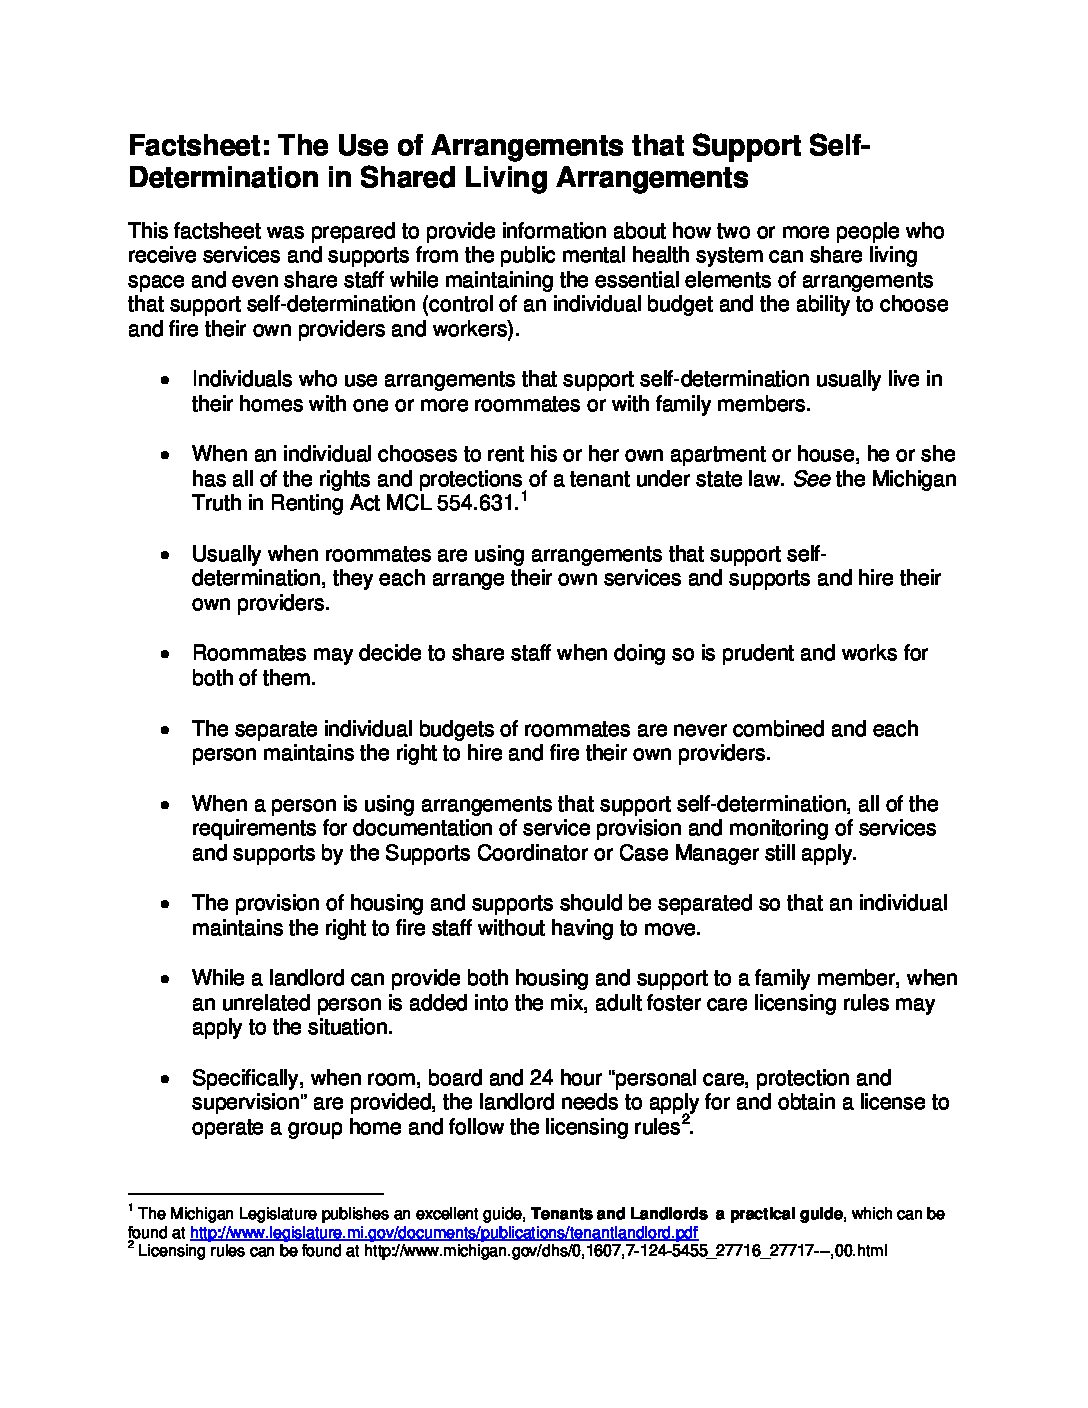 Factsheet: The Use of Arrangements that Support Self-Determination in Shared Living Arrangements